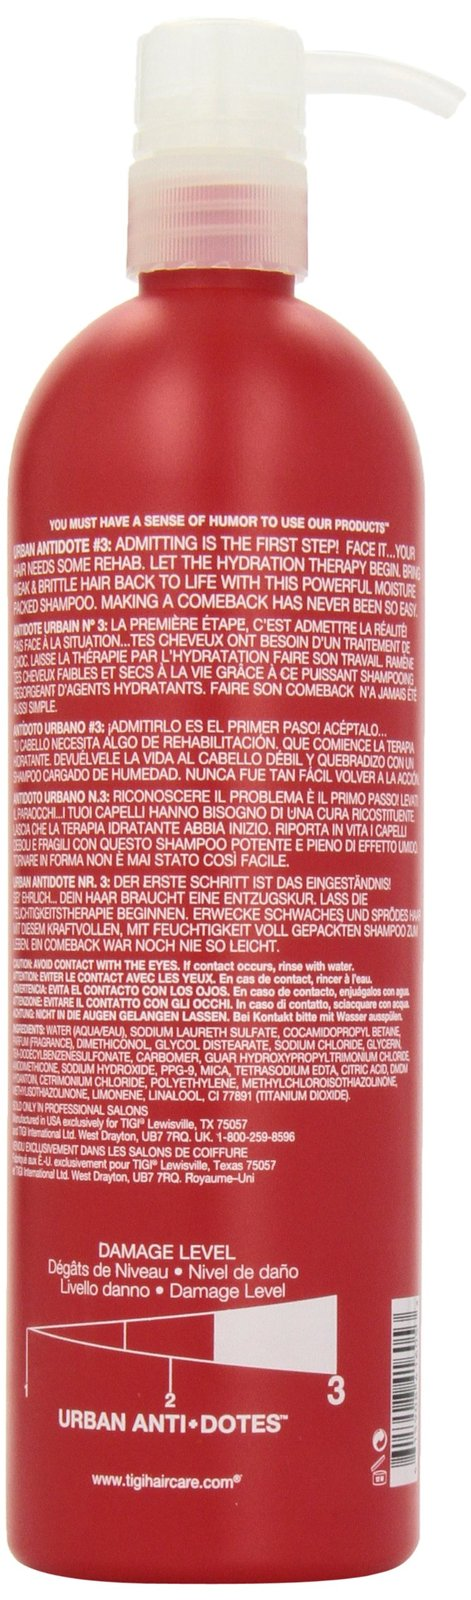 Tigi Bed Head Urban Anti+dotes Resurrection Shampoo Damage Level 3, 25.36 Ounce